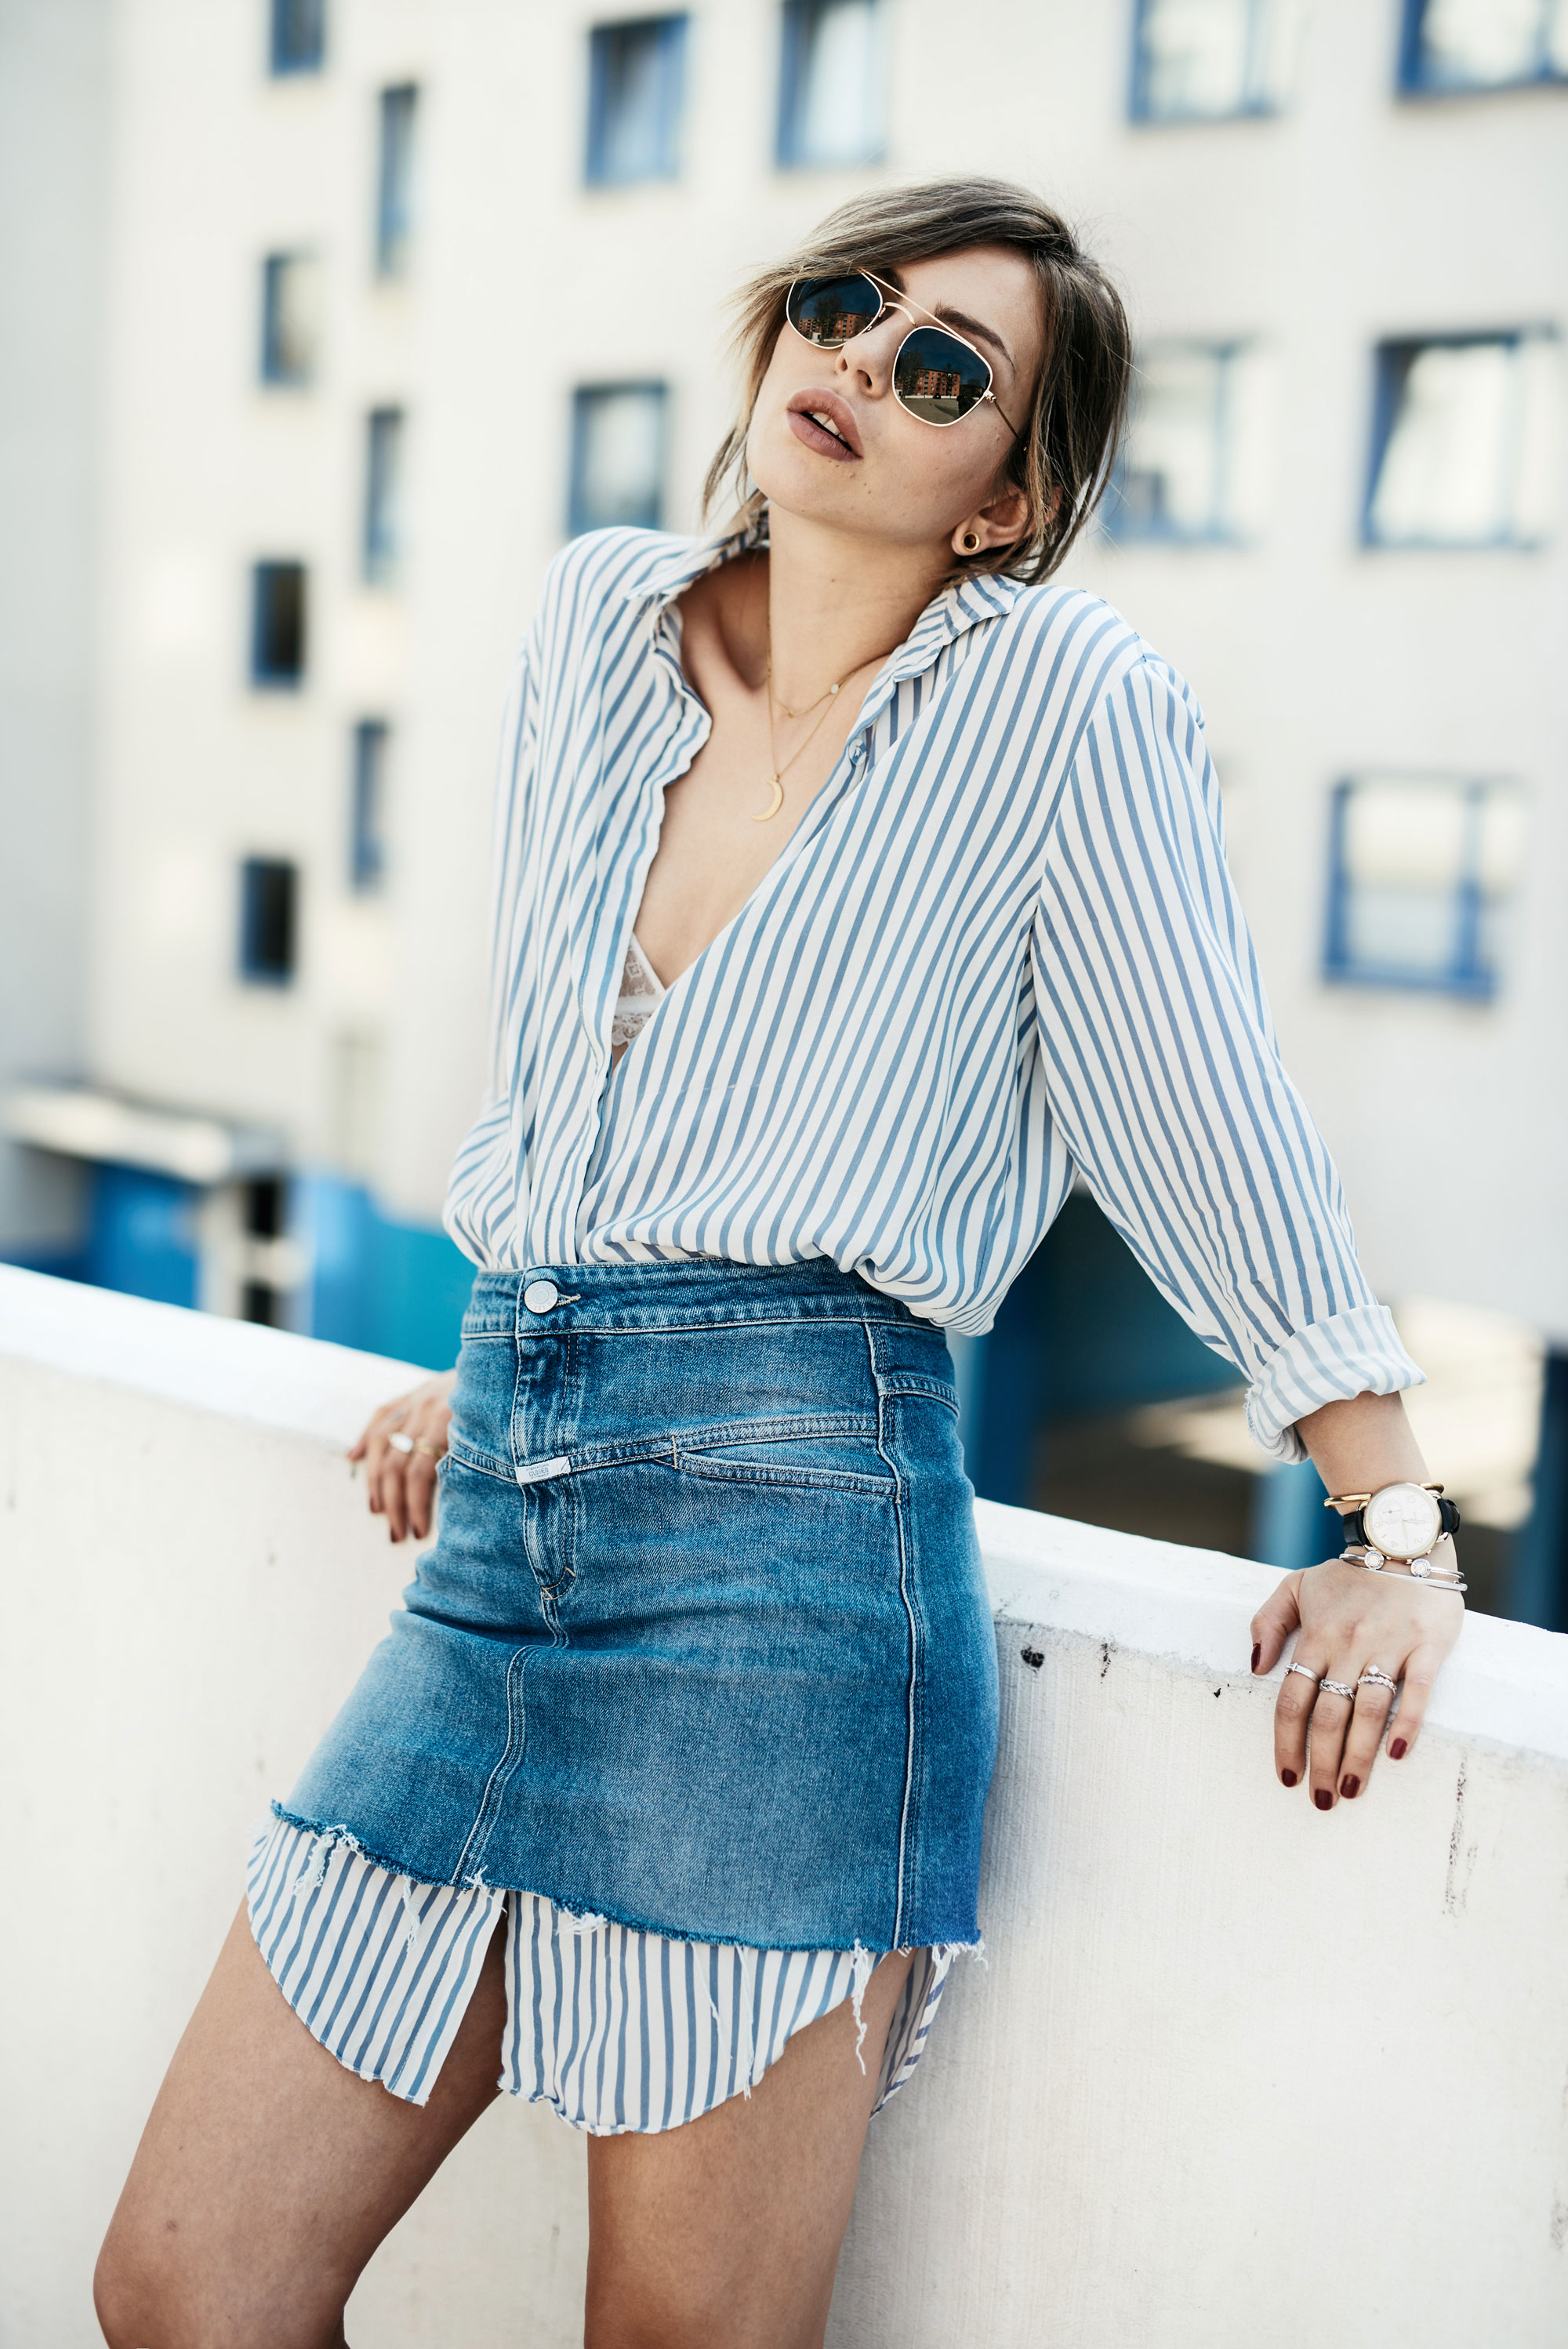 Sommer Trend: Hemd unter Rock | style: business, effortless, cool, chic, denim, easy, simple, minimal, edgy, blue & white, striped